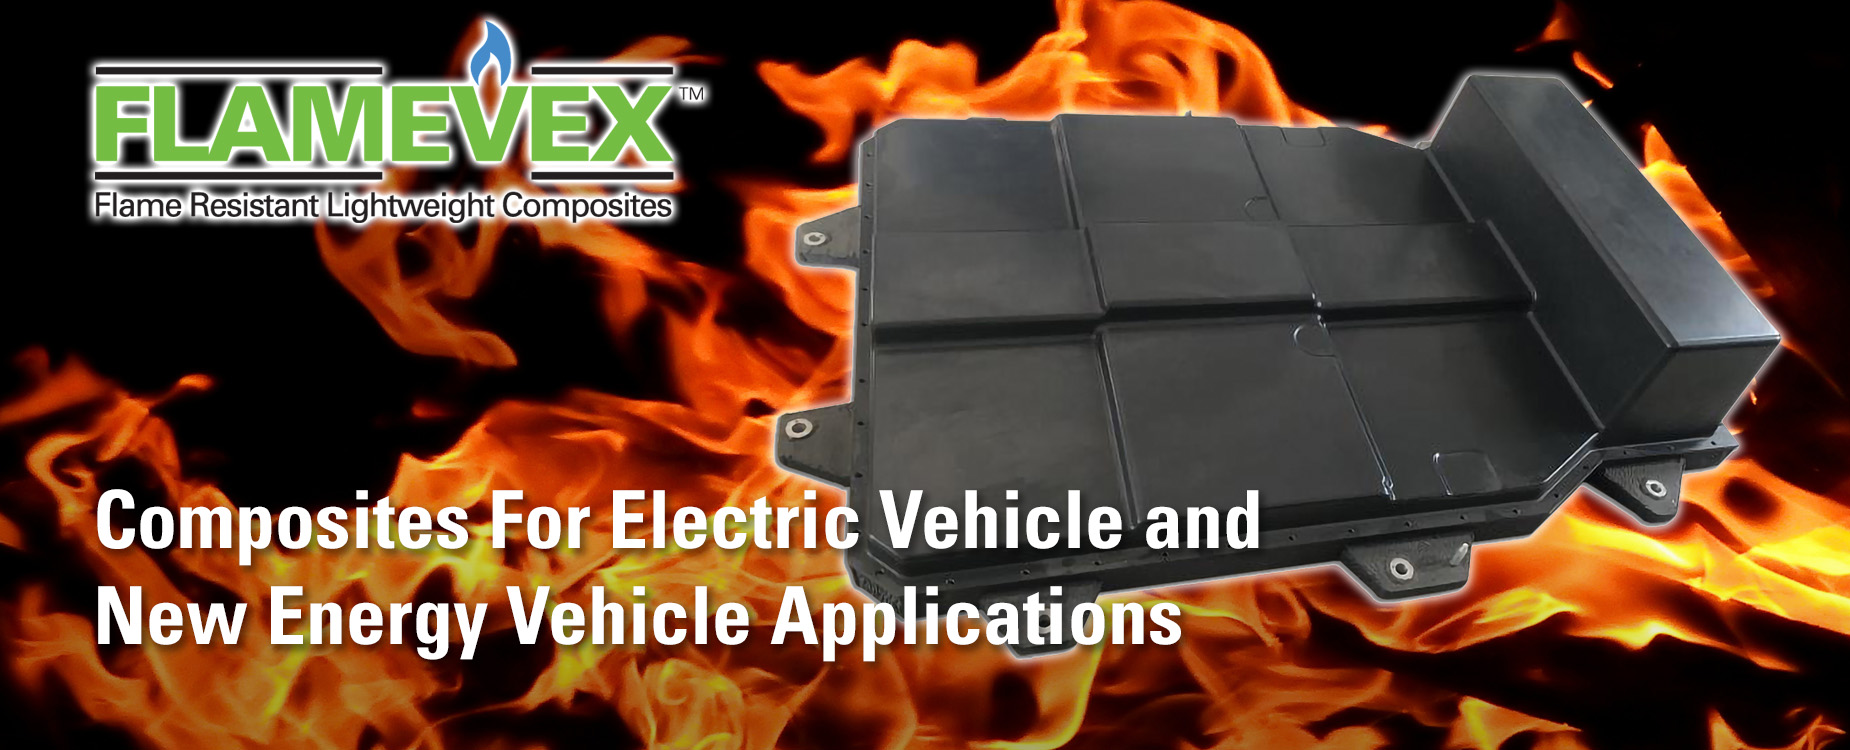 Flamevex Flame Resistant Lightweight Composites